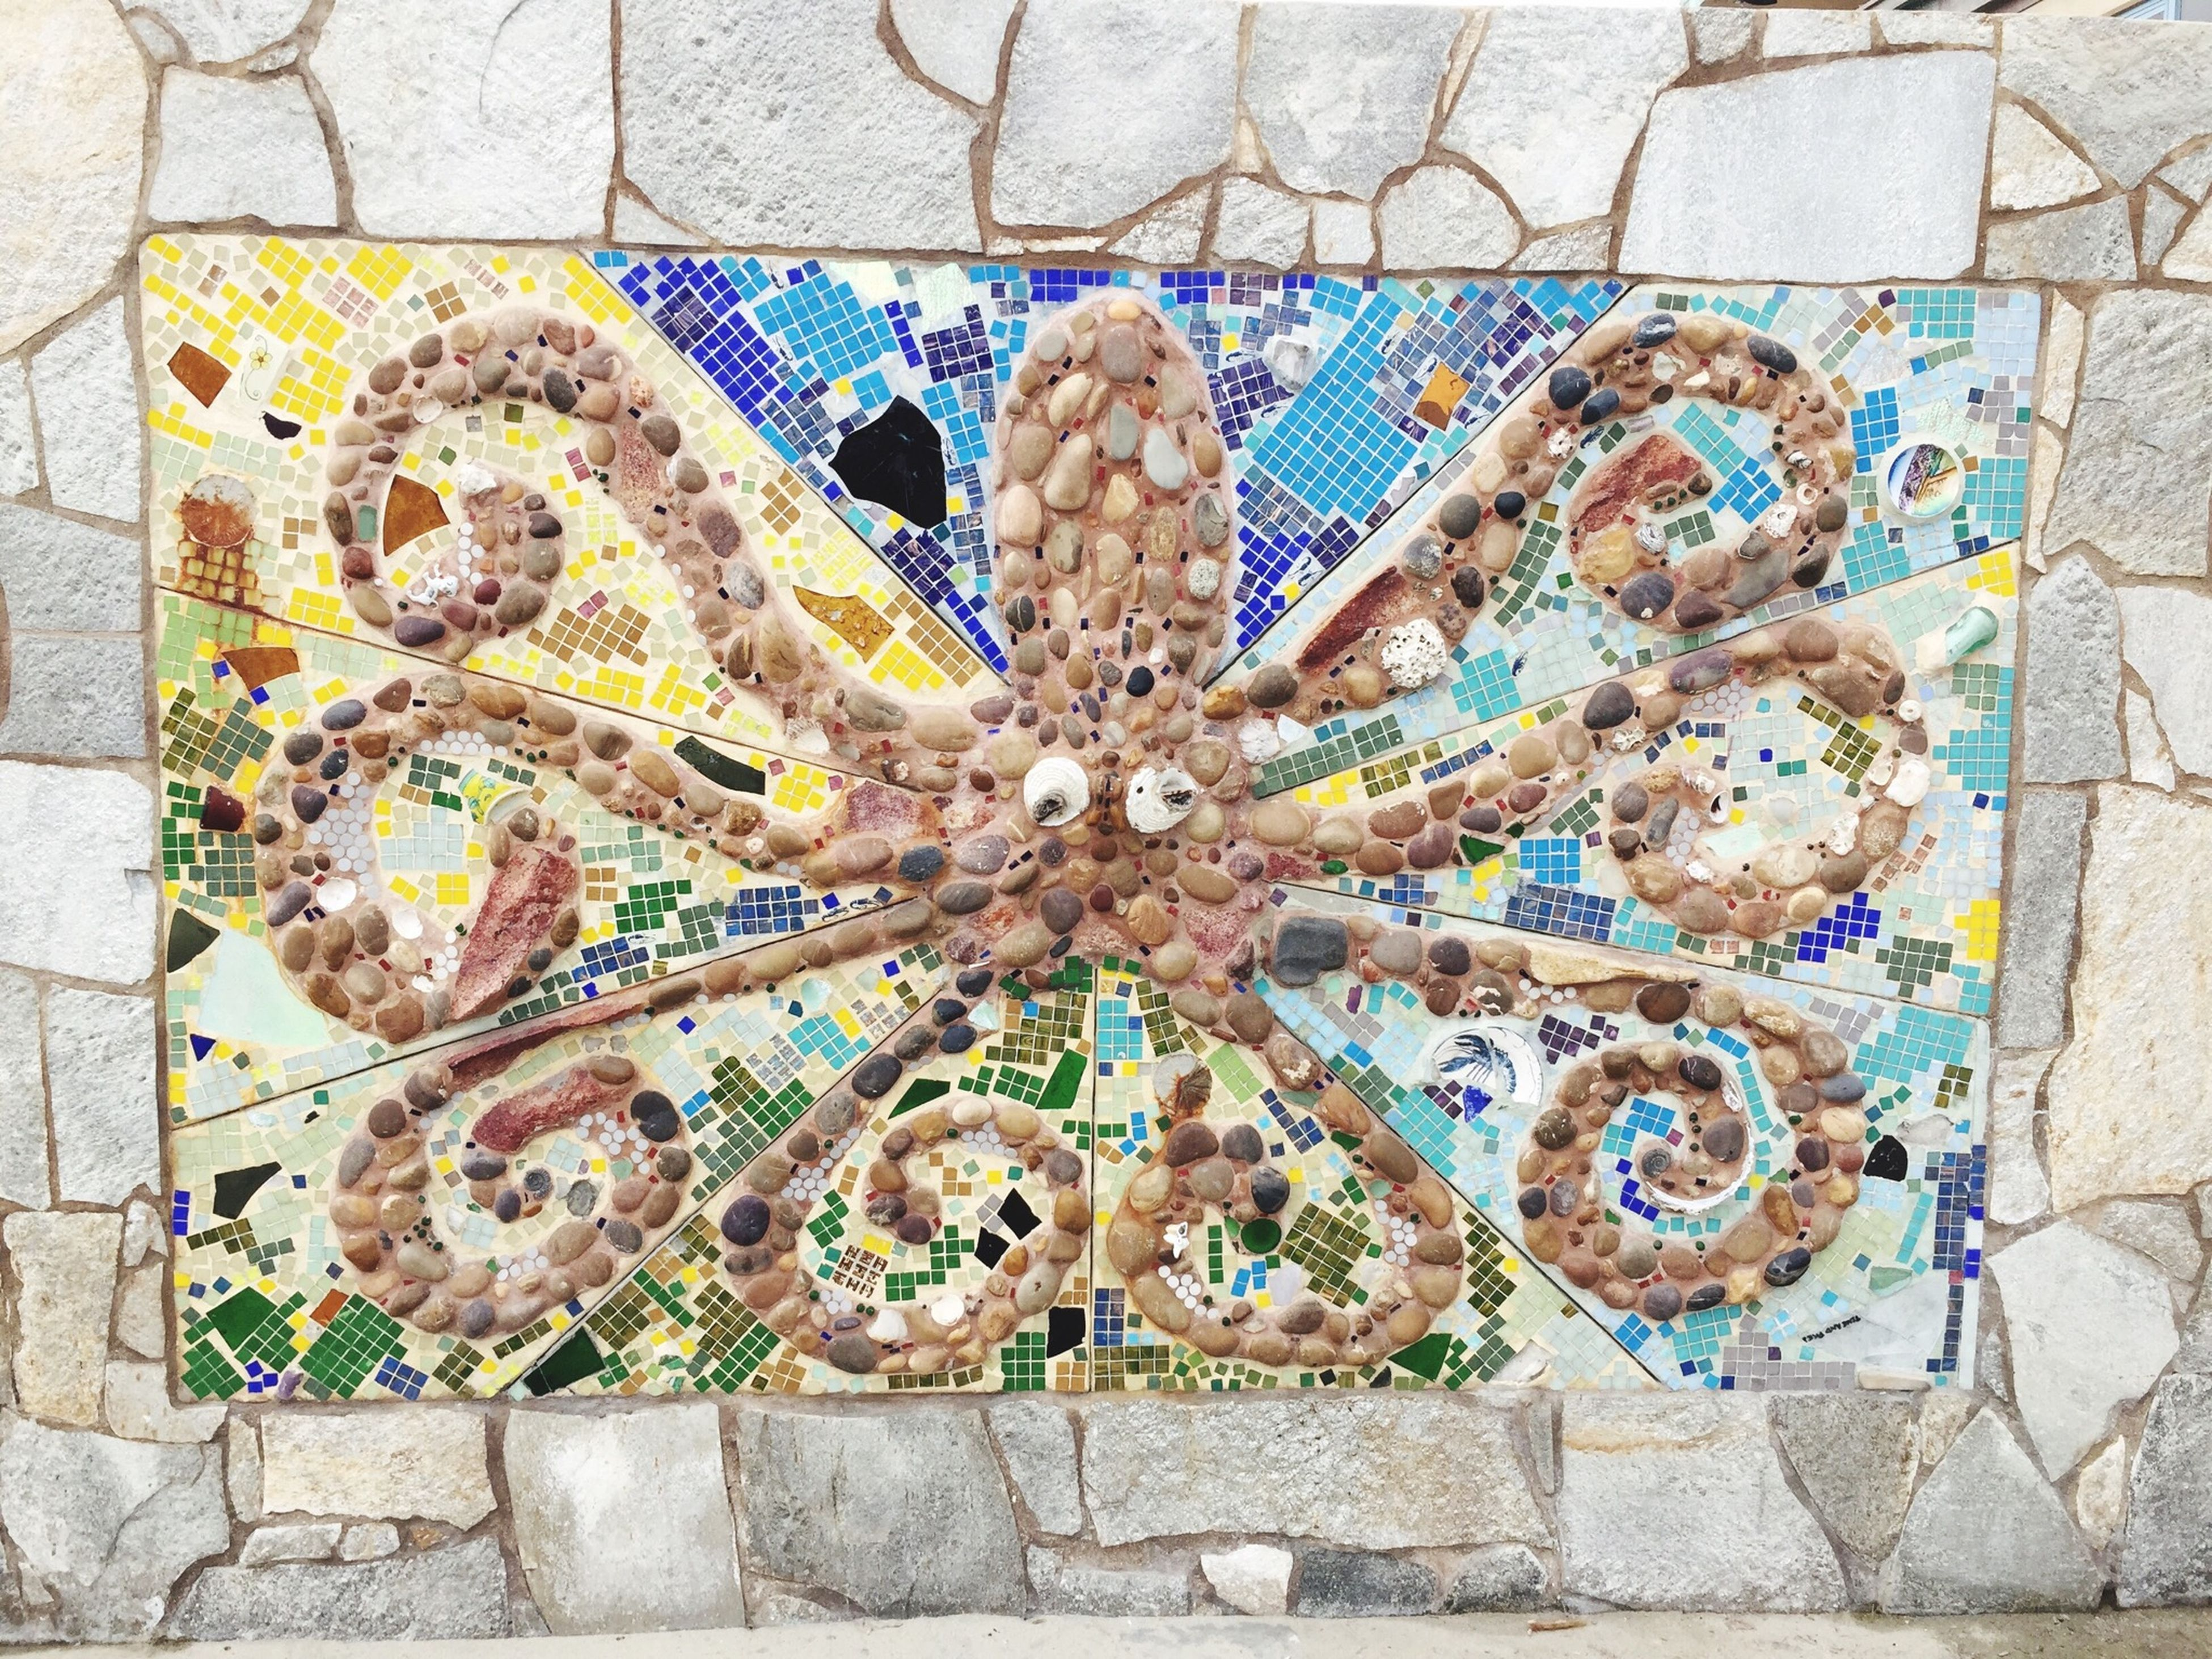 art and craft, art, creativity, wall - building feature, graffiti, pattern, built structure, architecture, human representation, text, multi colored, textured, wall, design, craft, full frame, carving - craft product, day, outdoors, backgrounds